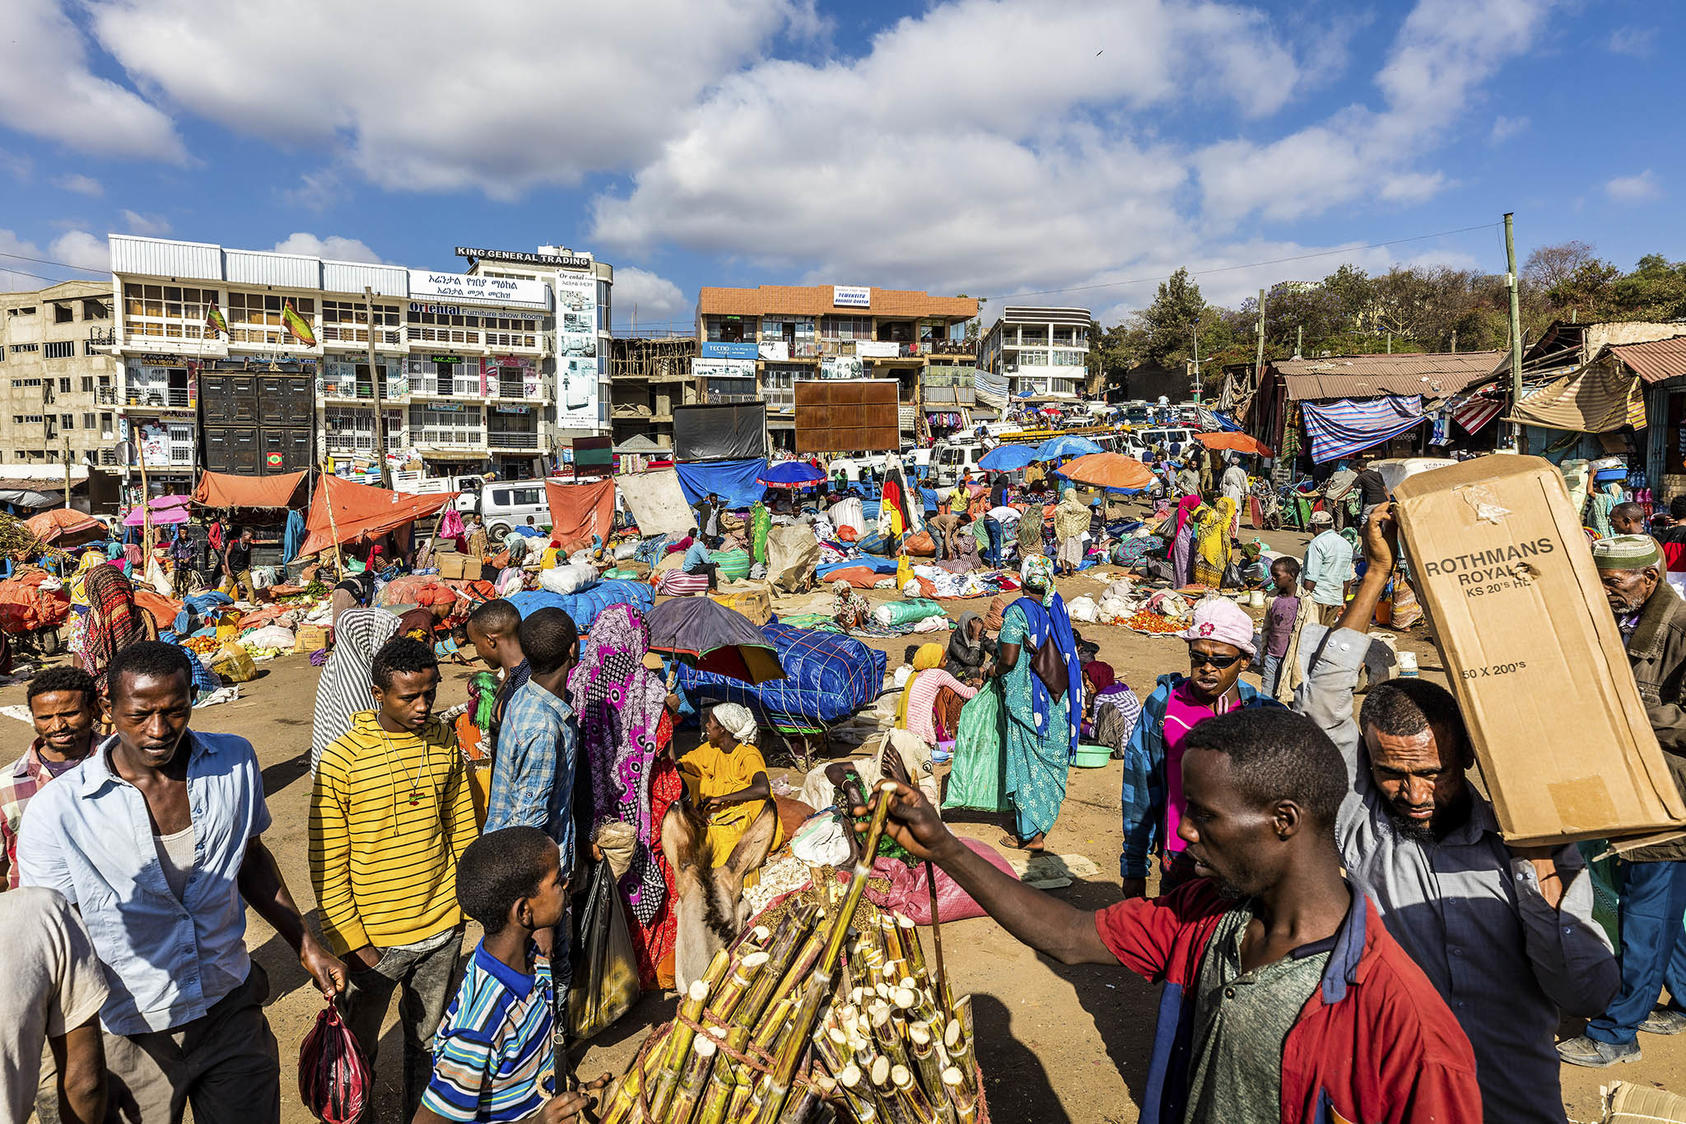 Throngs of shoppers and traders in the Christian market, outside the Showa Gate of Harar Jugol, Ethiopia, Feb. 10, 2019. (Marcus Westberg/The New York Times)